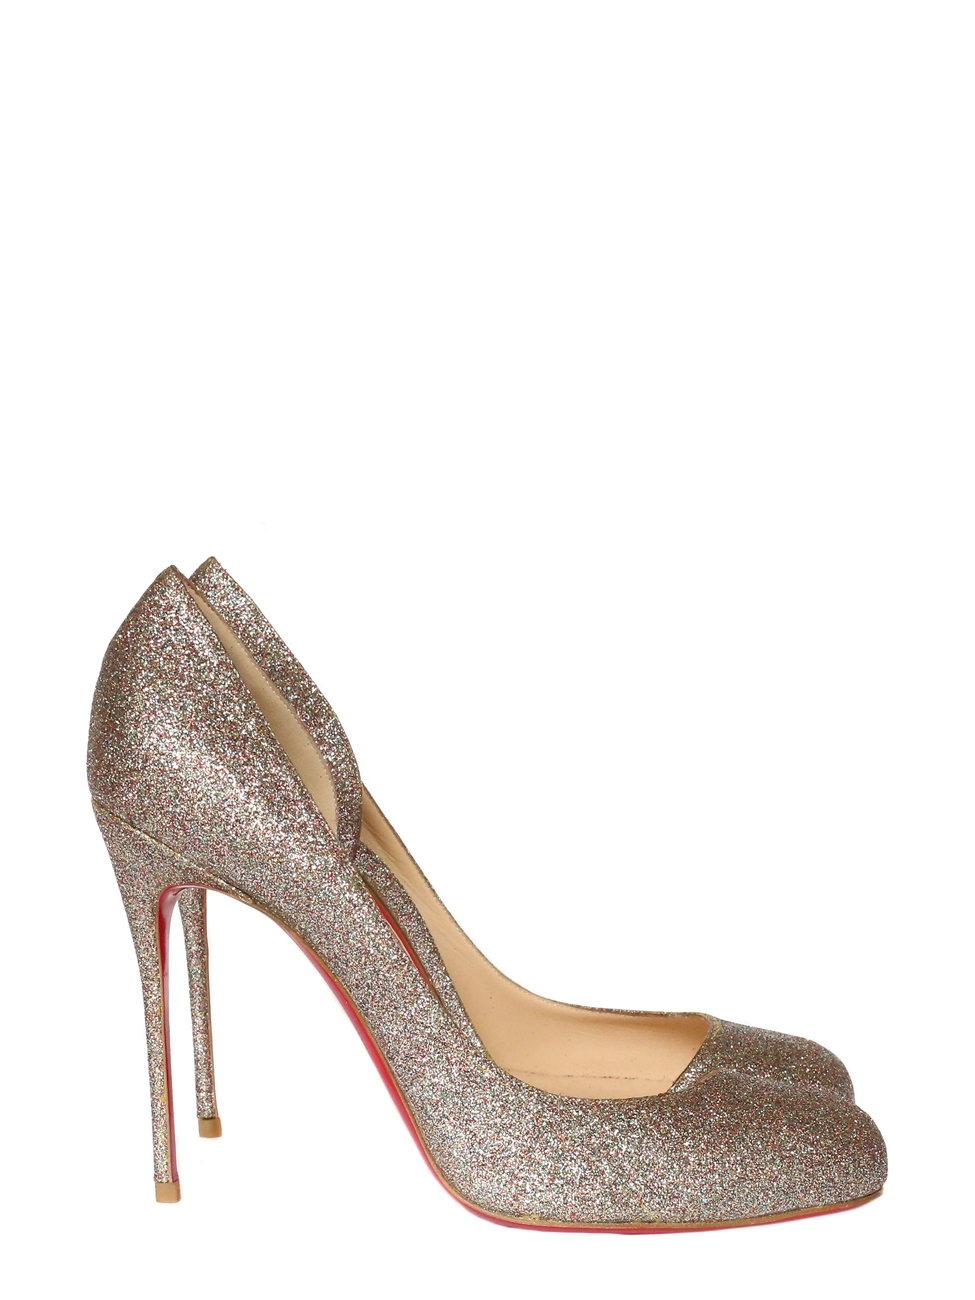 Chaussures Louboutin Paillettes